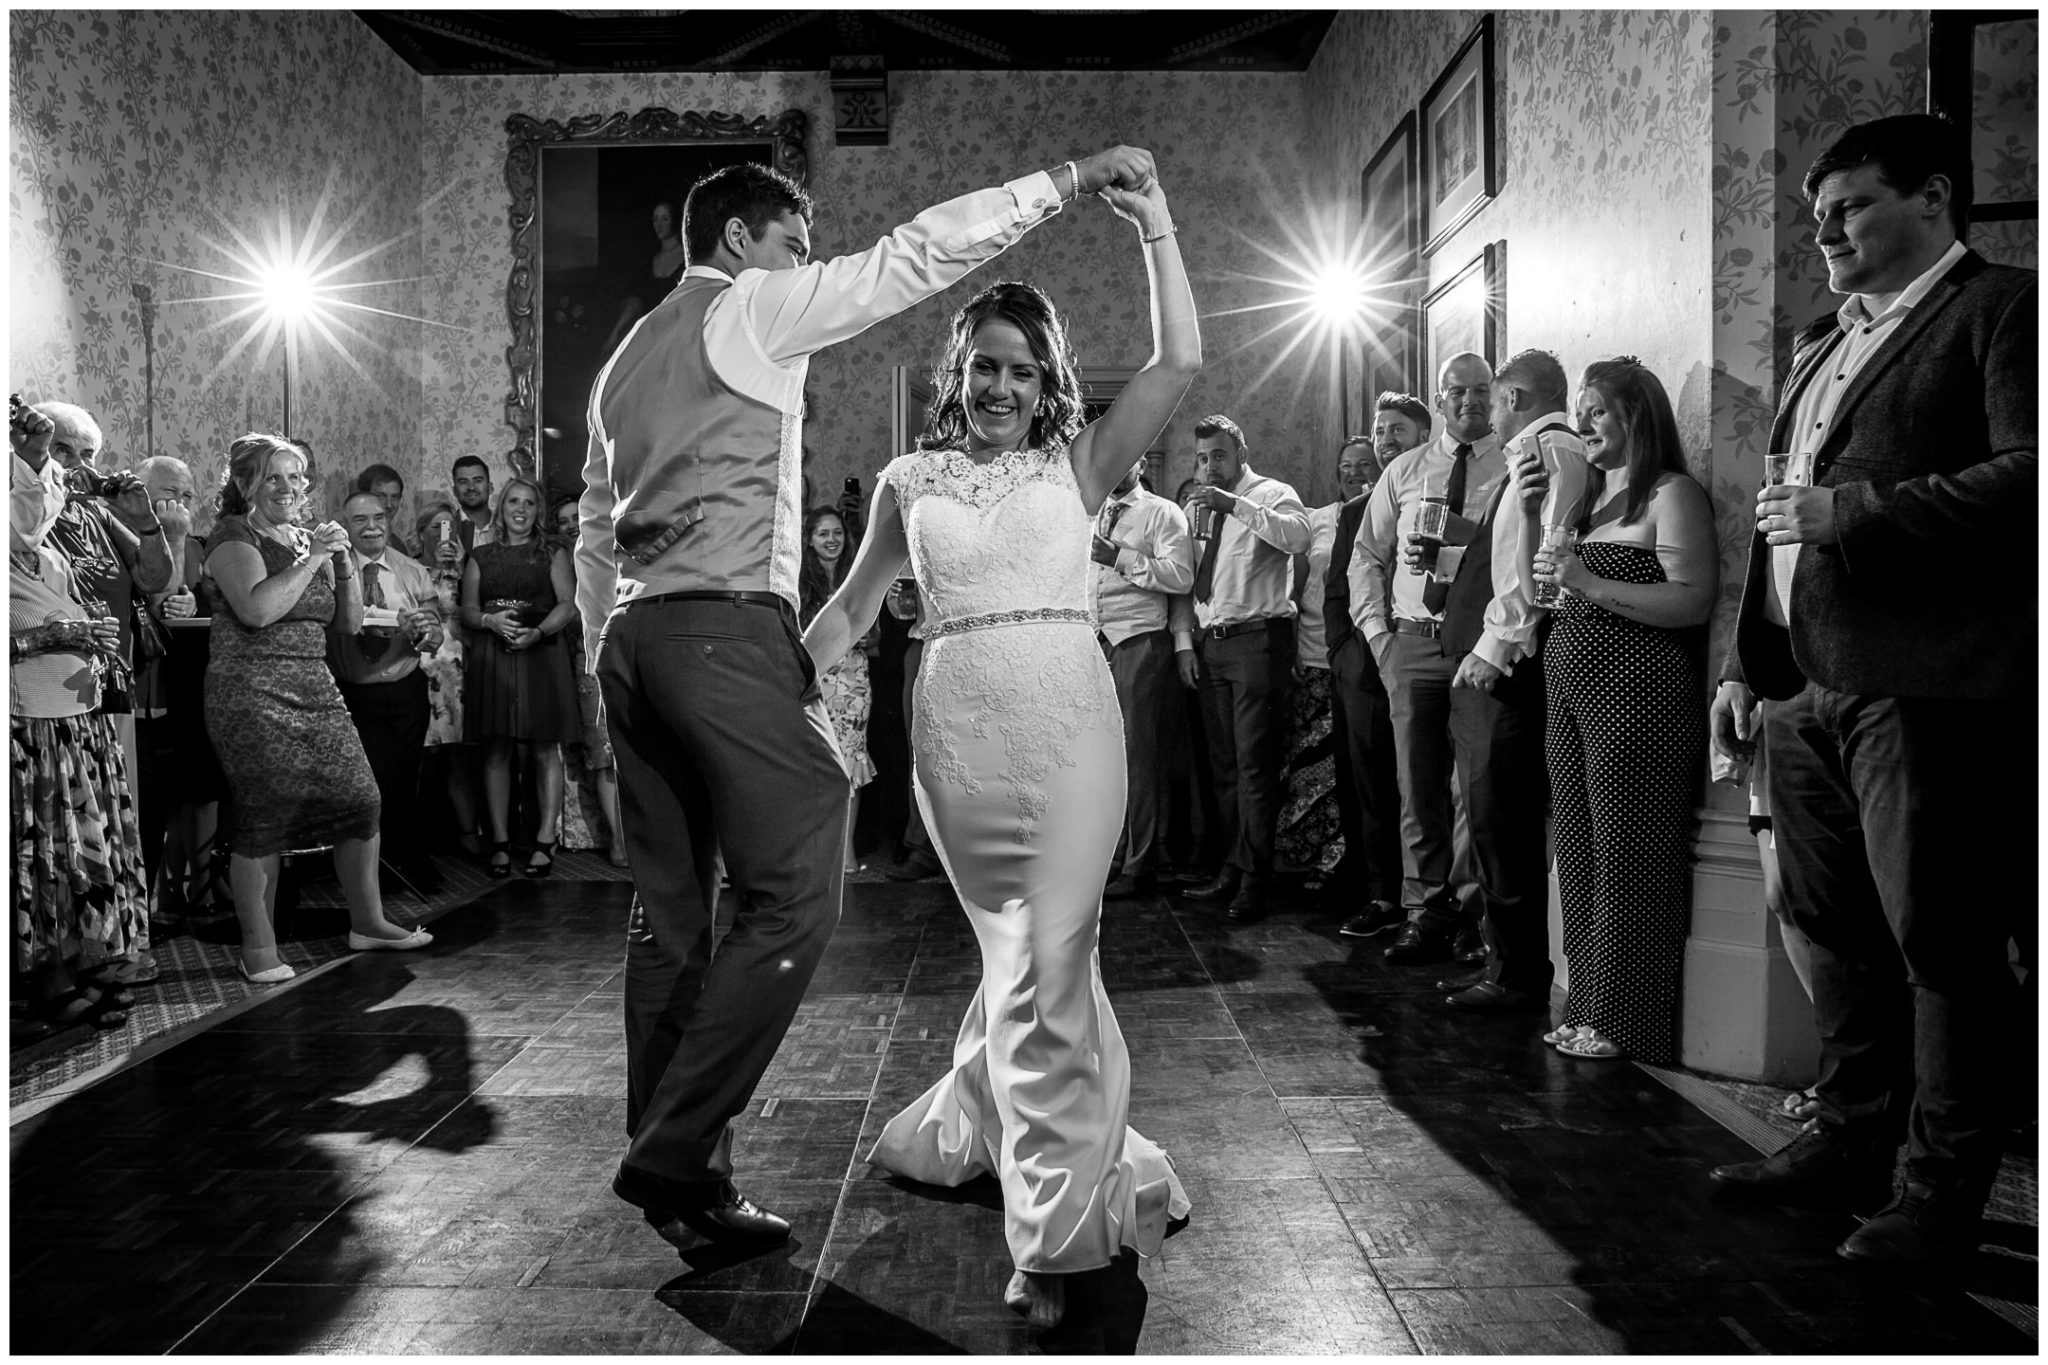 The groom spins his bride around during the first dance at the Elvetham